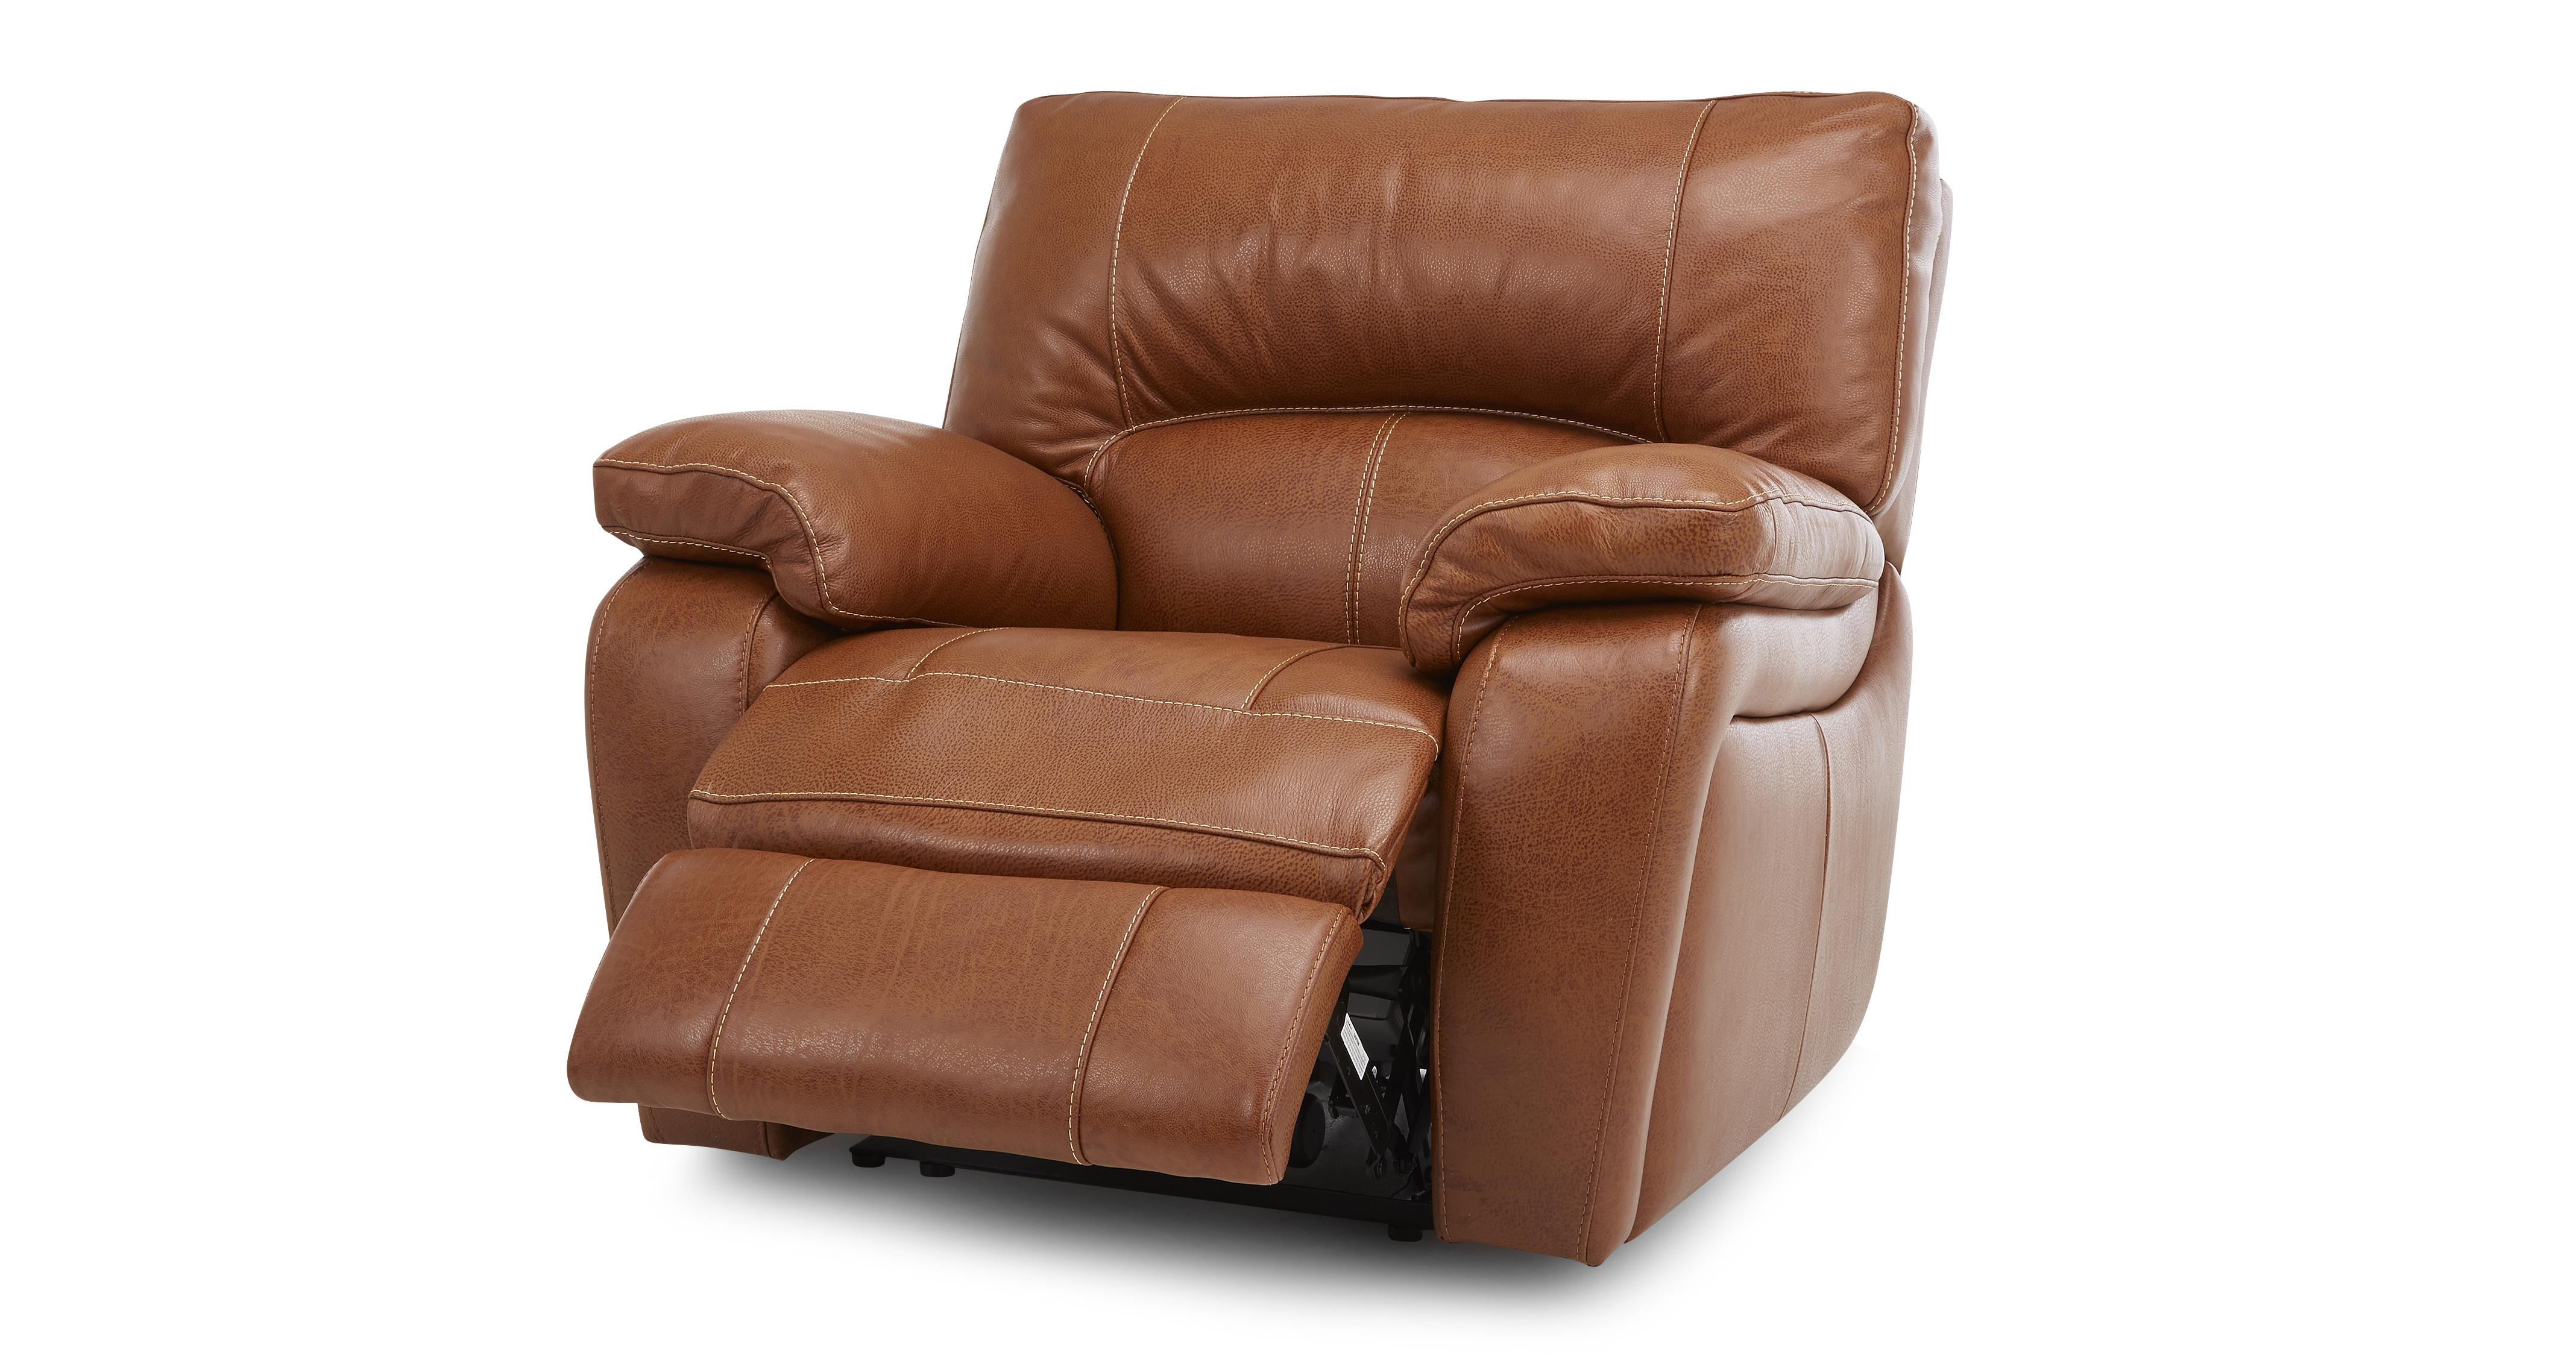 Reward Leather And Leather Look Electric Recliner Chair Brazil Contrast With